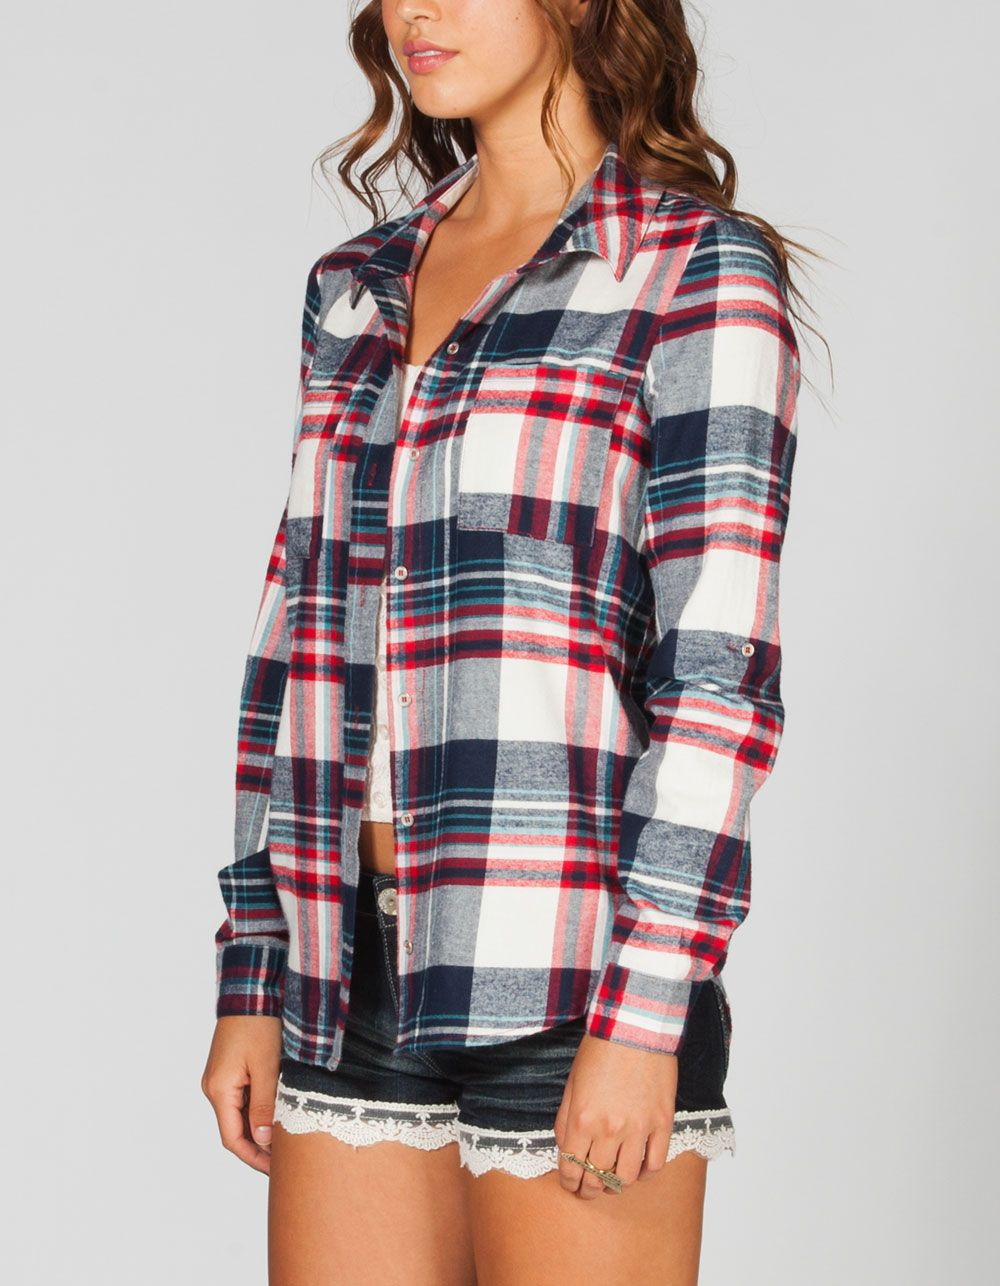 Full Tilt Womens Washed Flannel Shirt. And Shorts Fashion-ista